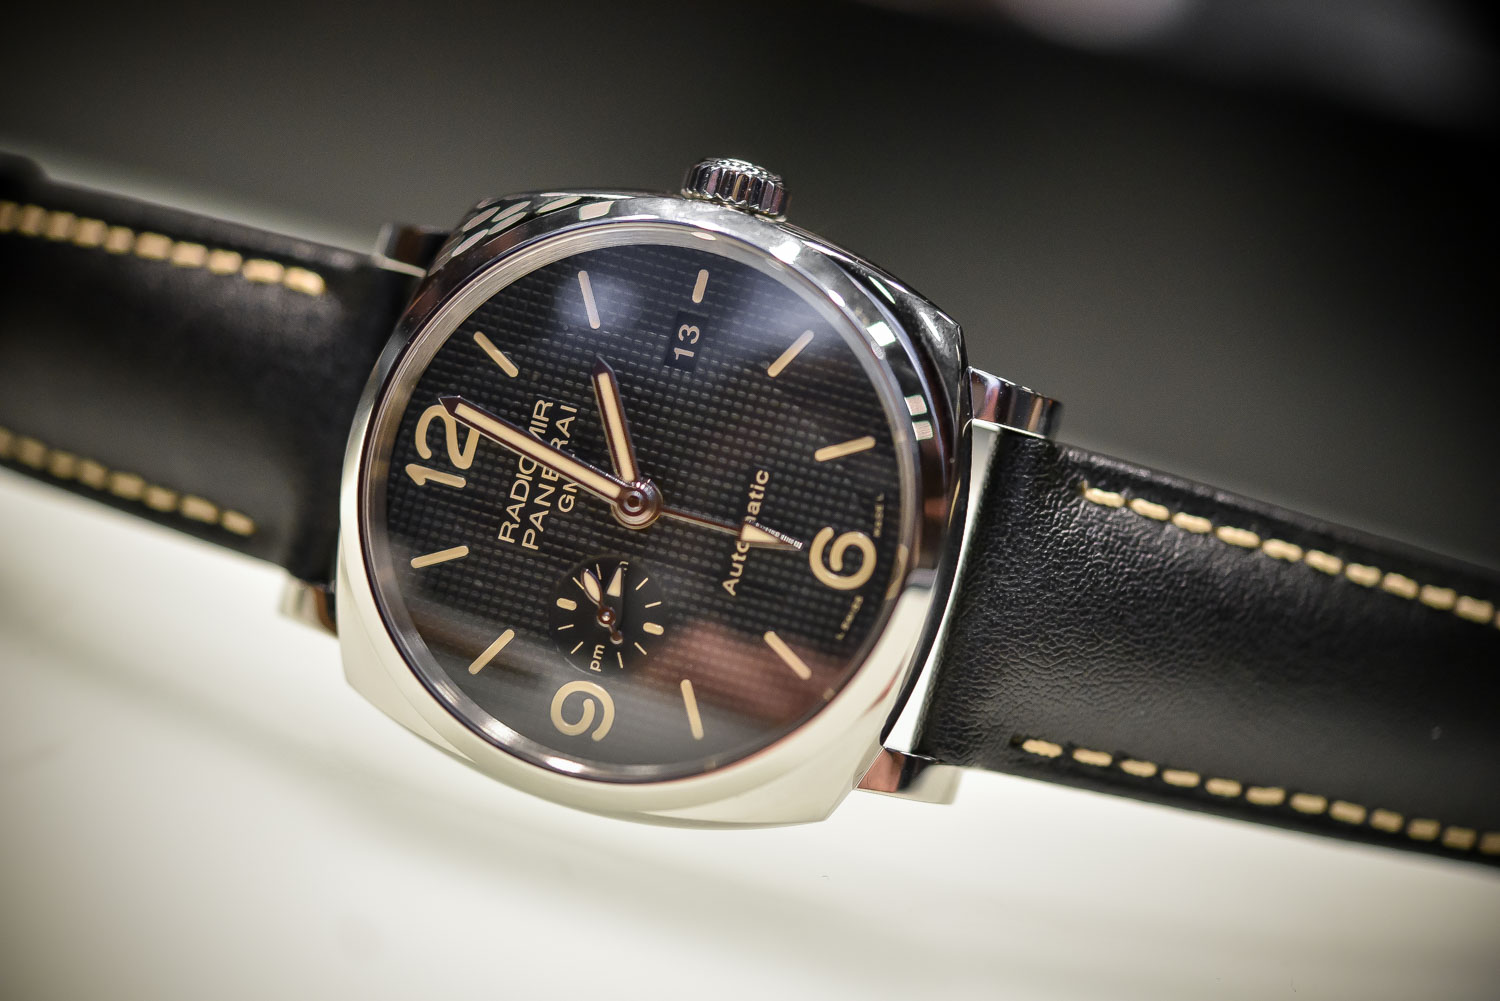 """""""Panerai – Dive into Time"""" Exhibition: The History and Future of Panerai on Display in Florence – May 18th – 21st 2016"""